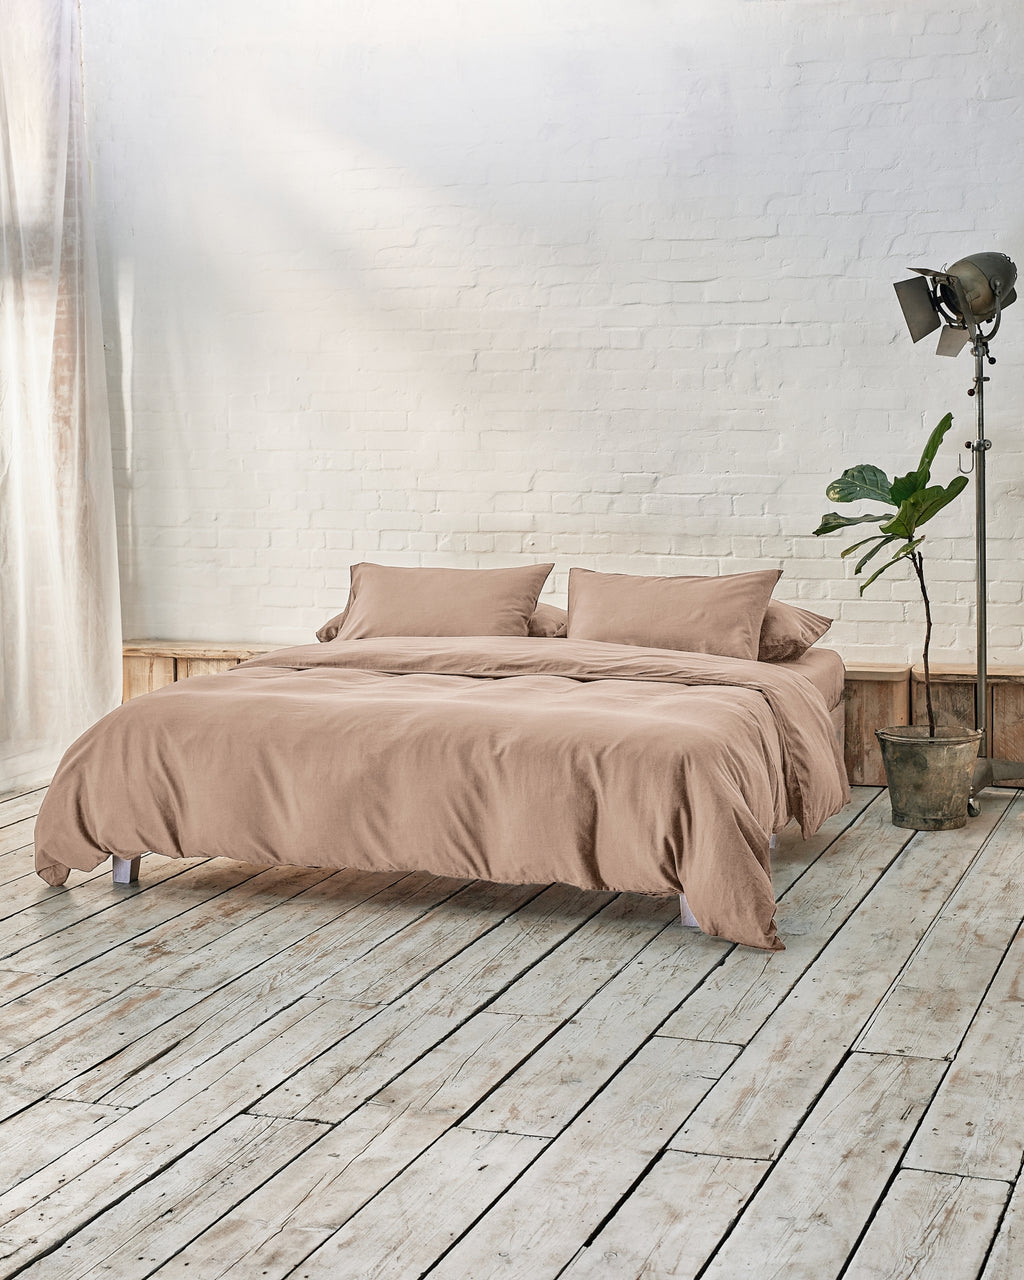 beige bedding set including a fitted sheet, duvet cover and pillowcases